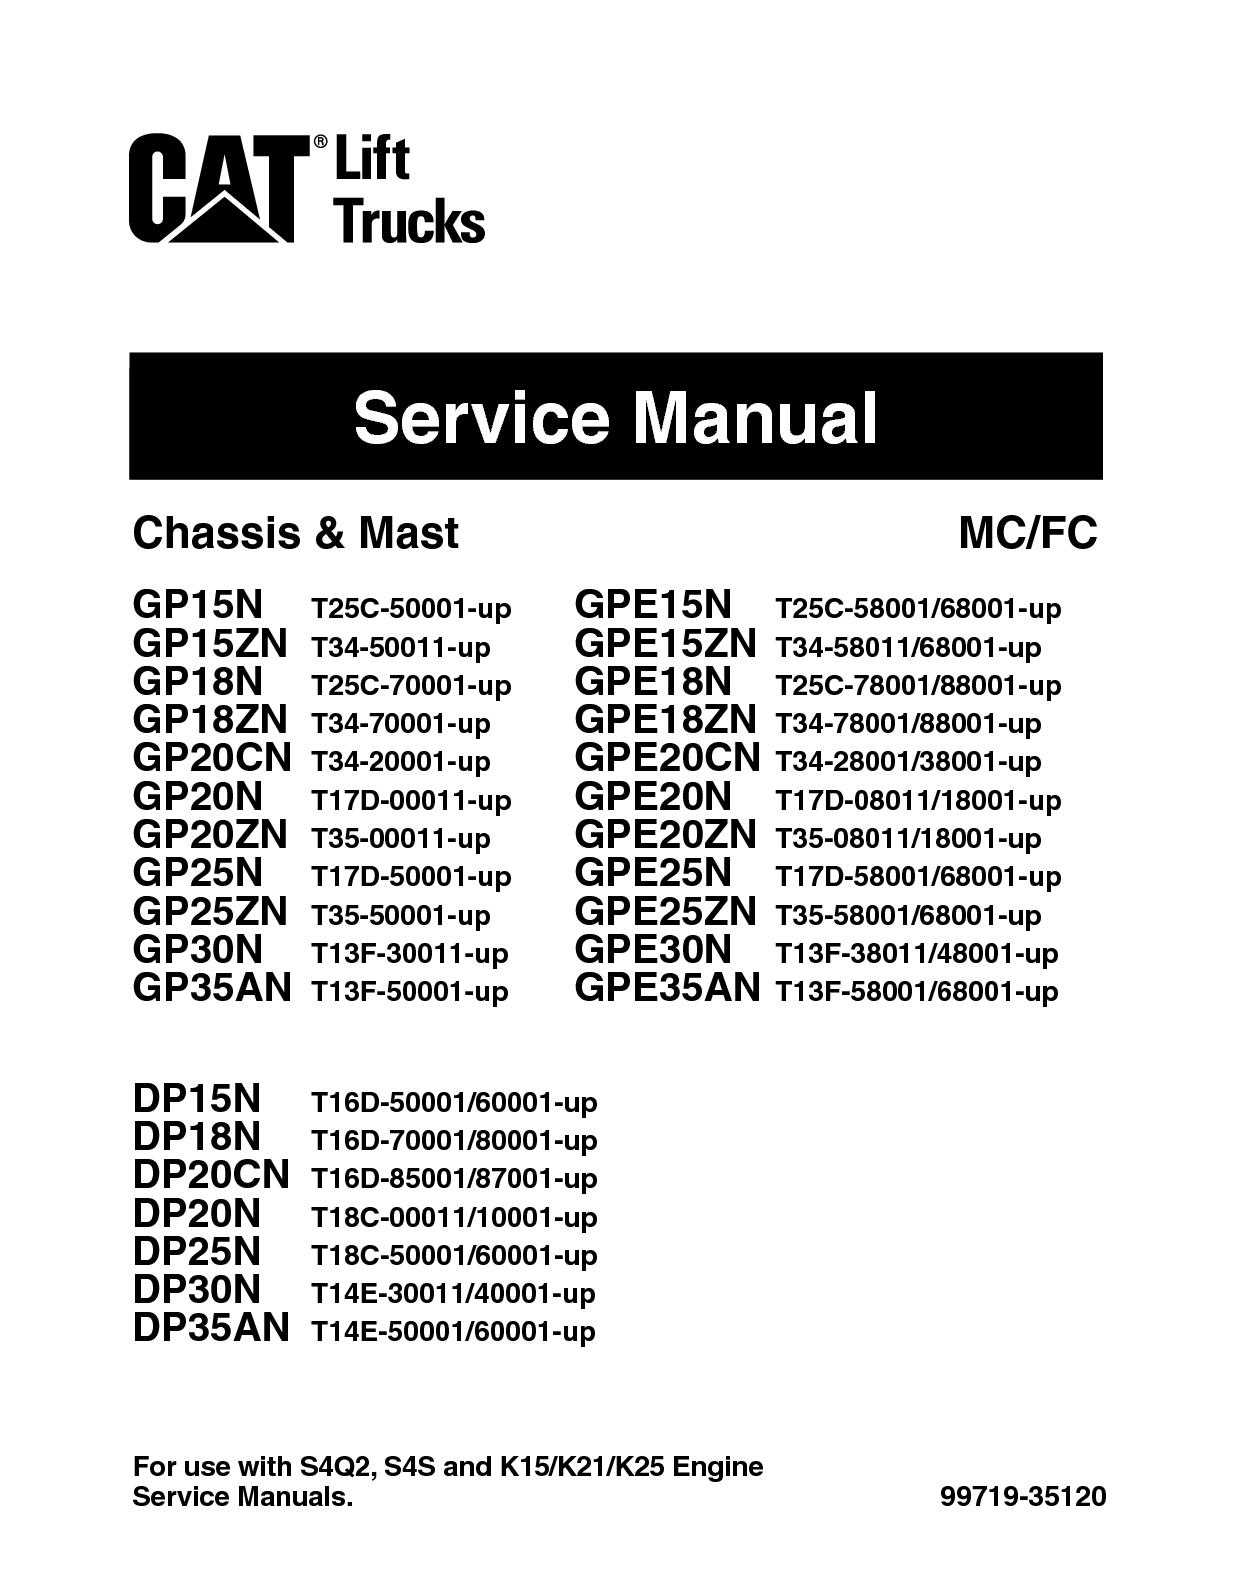 Calaméo - Caterpillar Cat GP35N Forklift Lift Trucks Service Repair Manual  SNT13F 50001 And Up